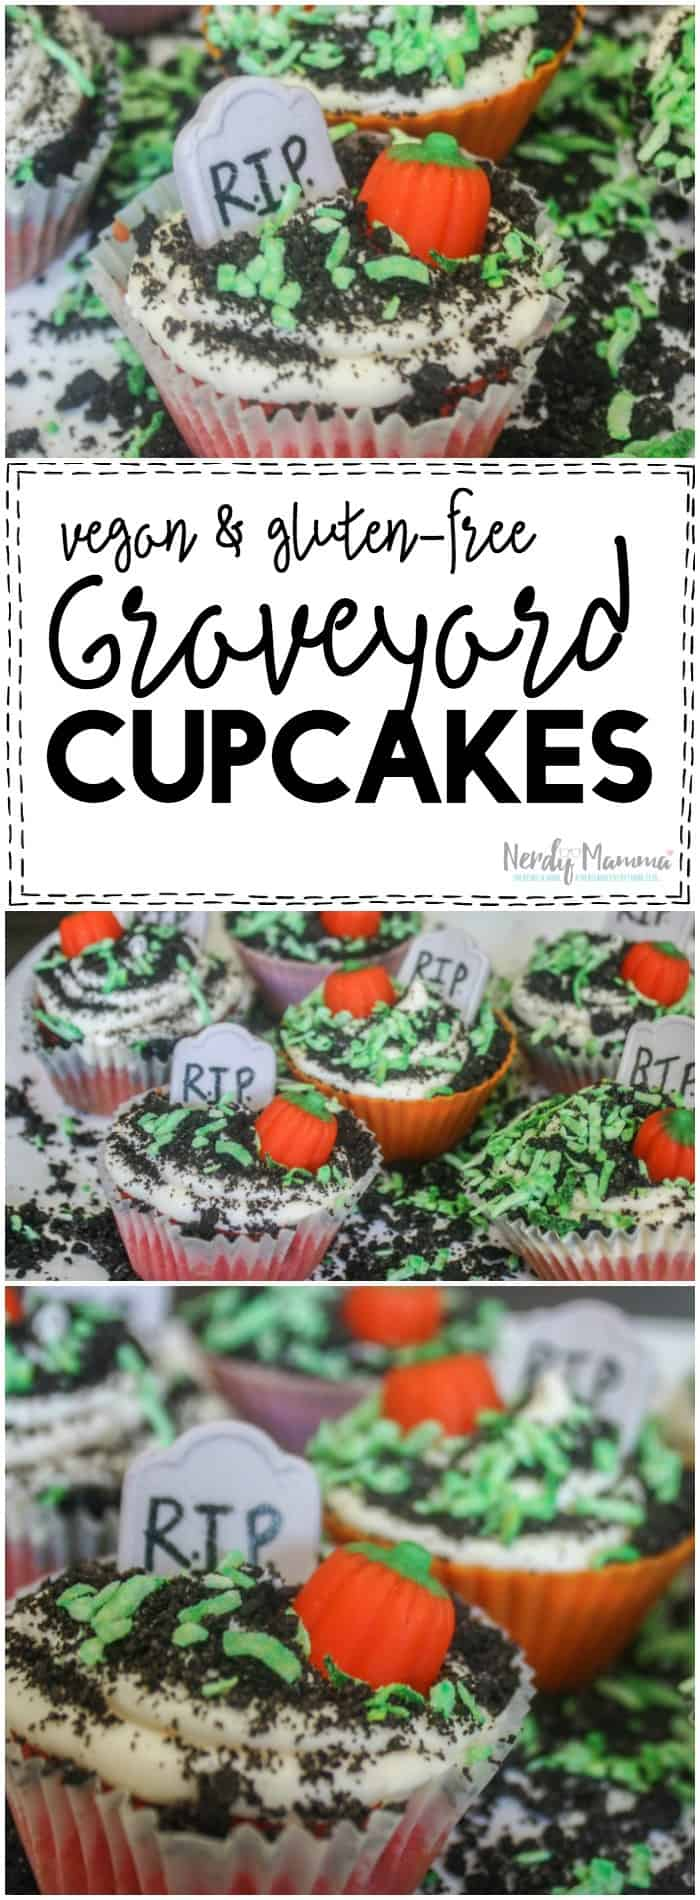 Oh, these graveyard cupcakes seem so DOABLE. I could totally make them for my son's halloween party at school! Love this recipe, too, because it's vegan and gluten-free...safe for all the kids at school!